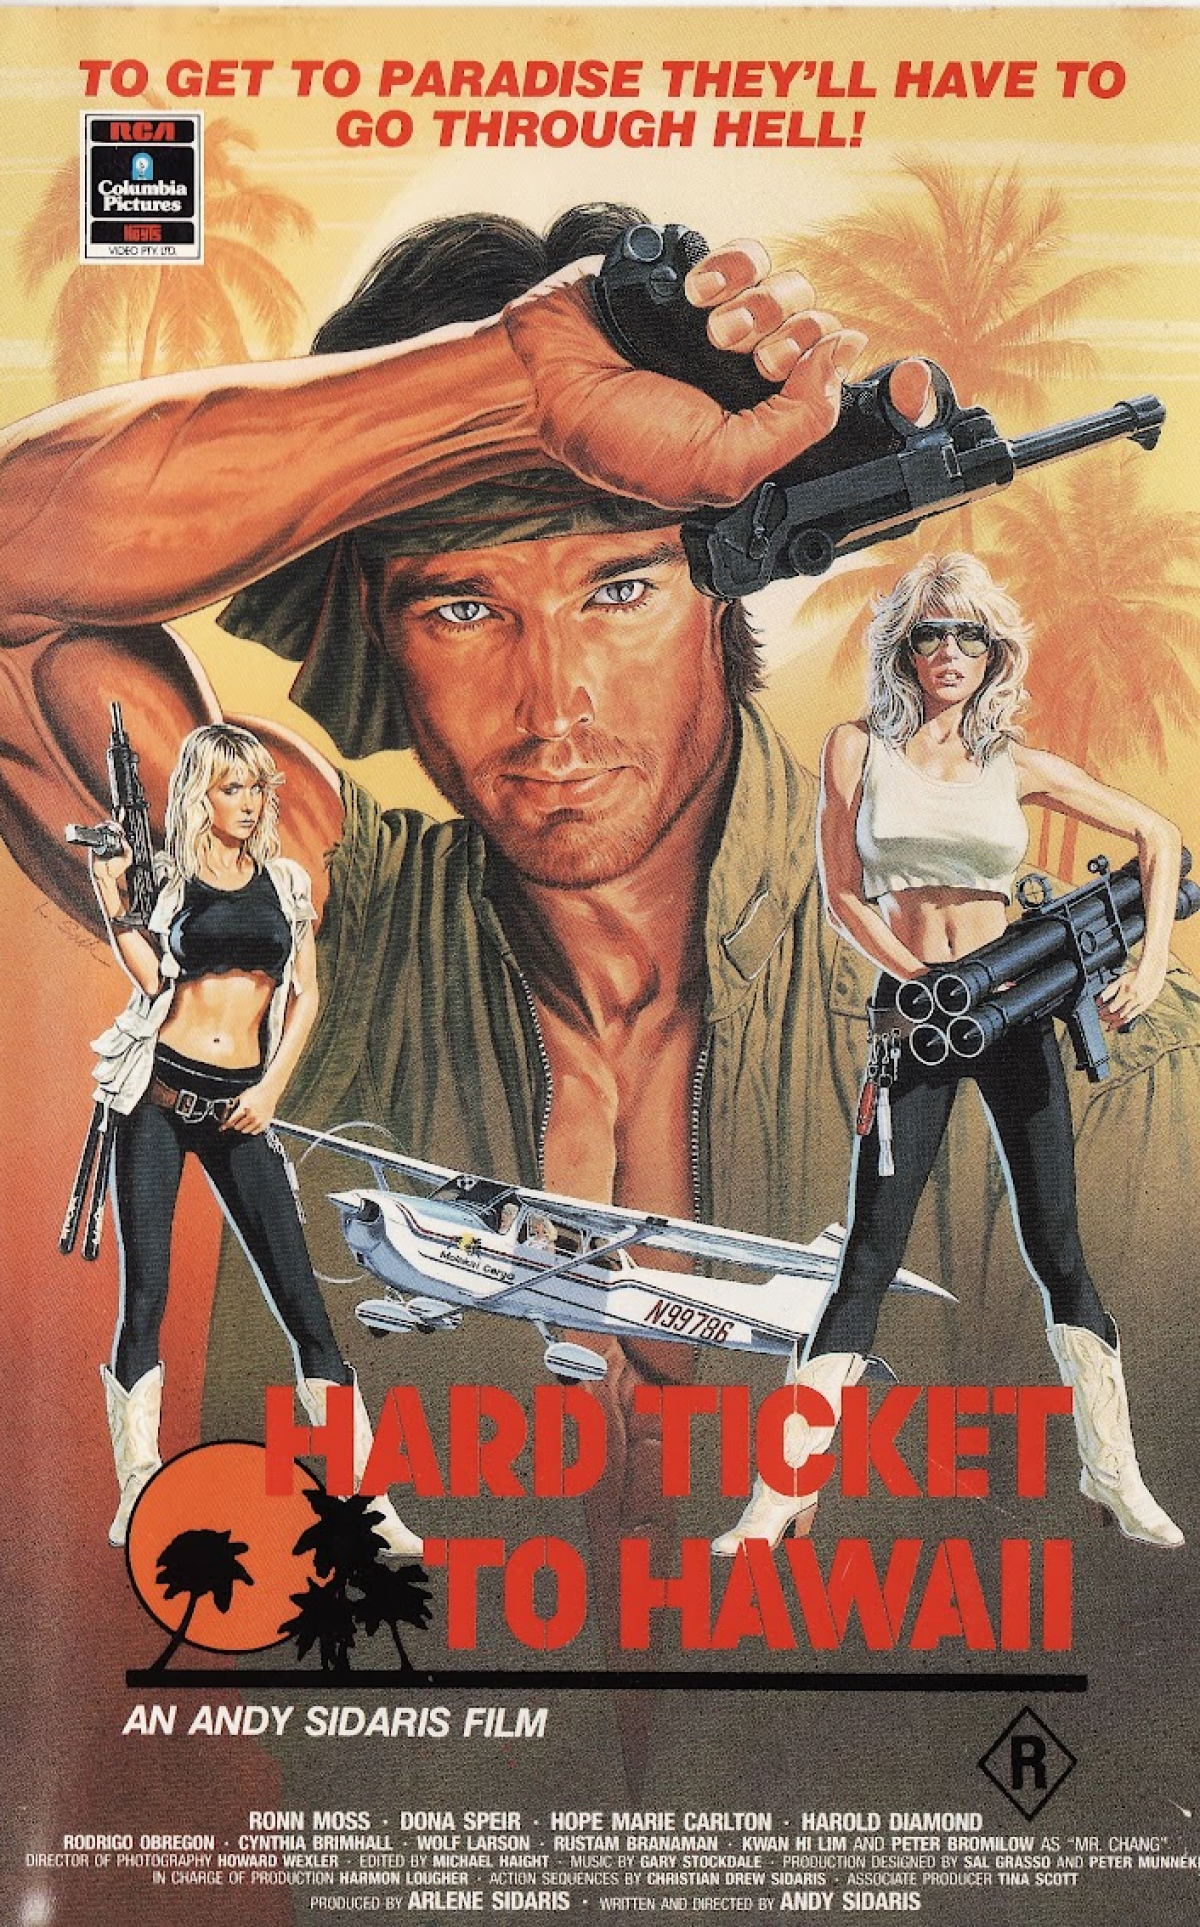 The Thirty Seventh Entry Into This Disreputable Canon Is Andy Sidaris Utterly Genuine Trash Action Face Melter Hard Ticket To Hawaii